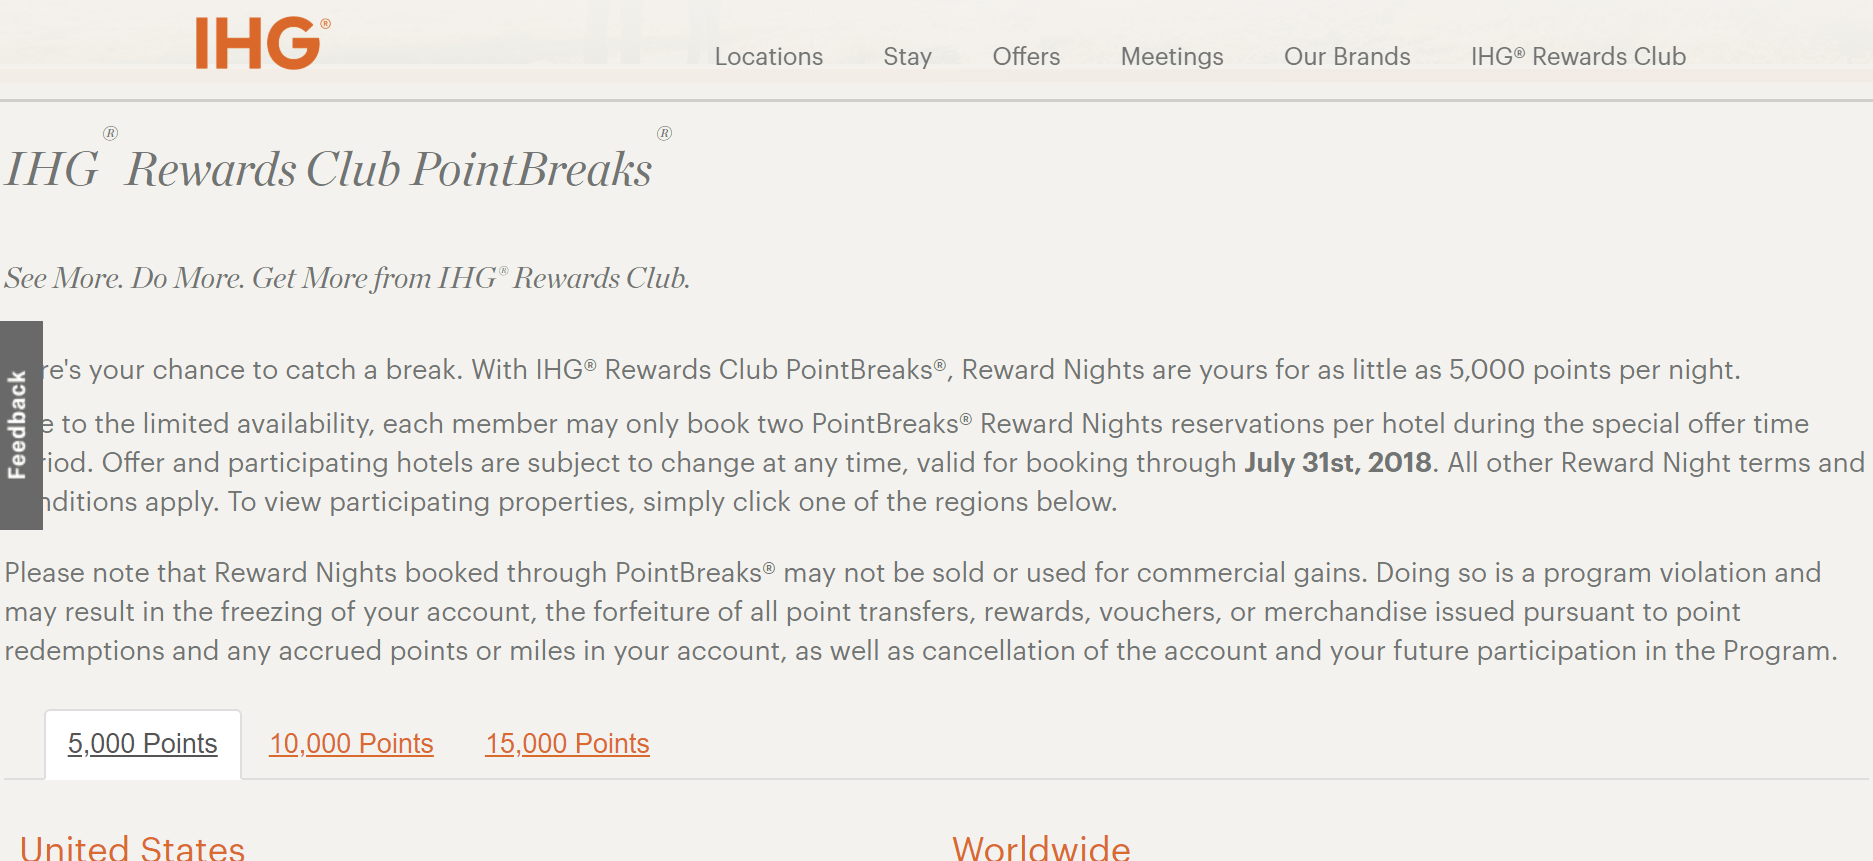 IHG Points Break Hotels